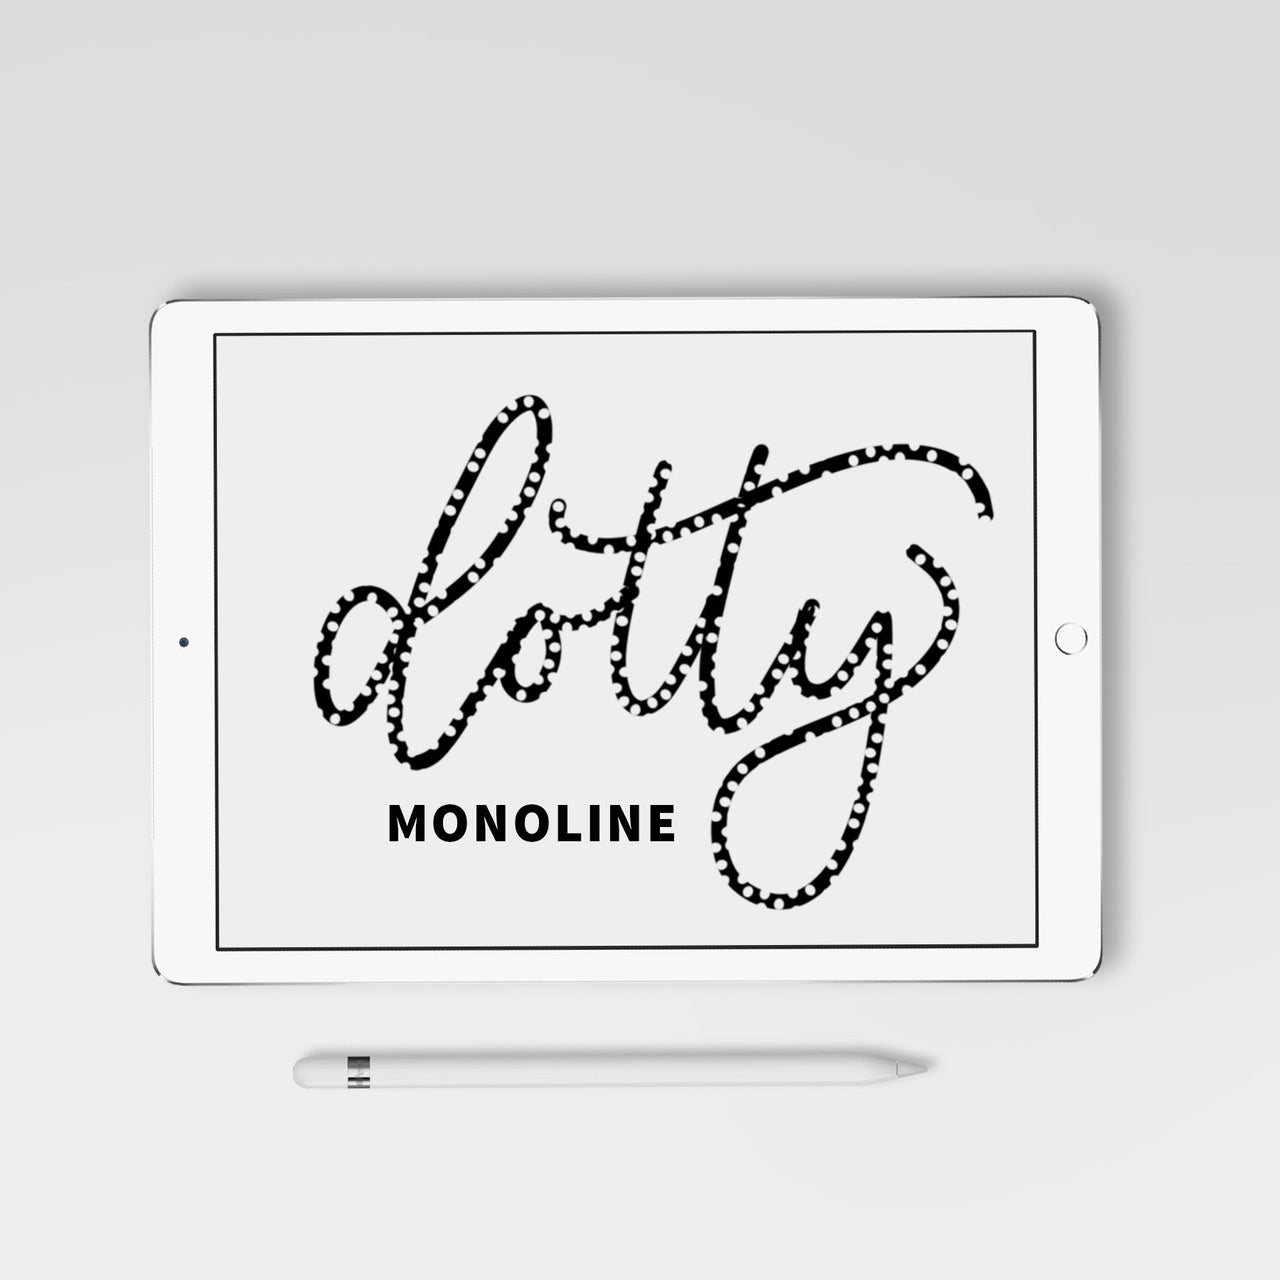 Dotty Monoline Procreate Brush - Hewitt Avenue